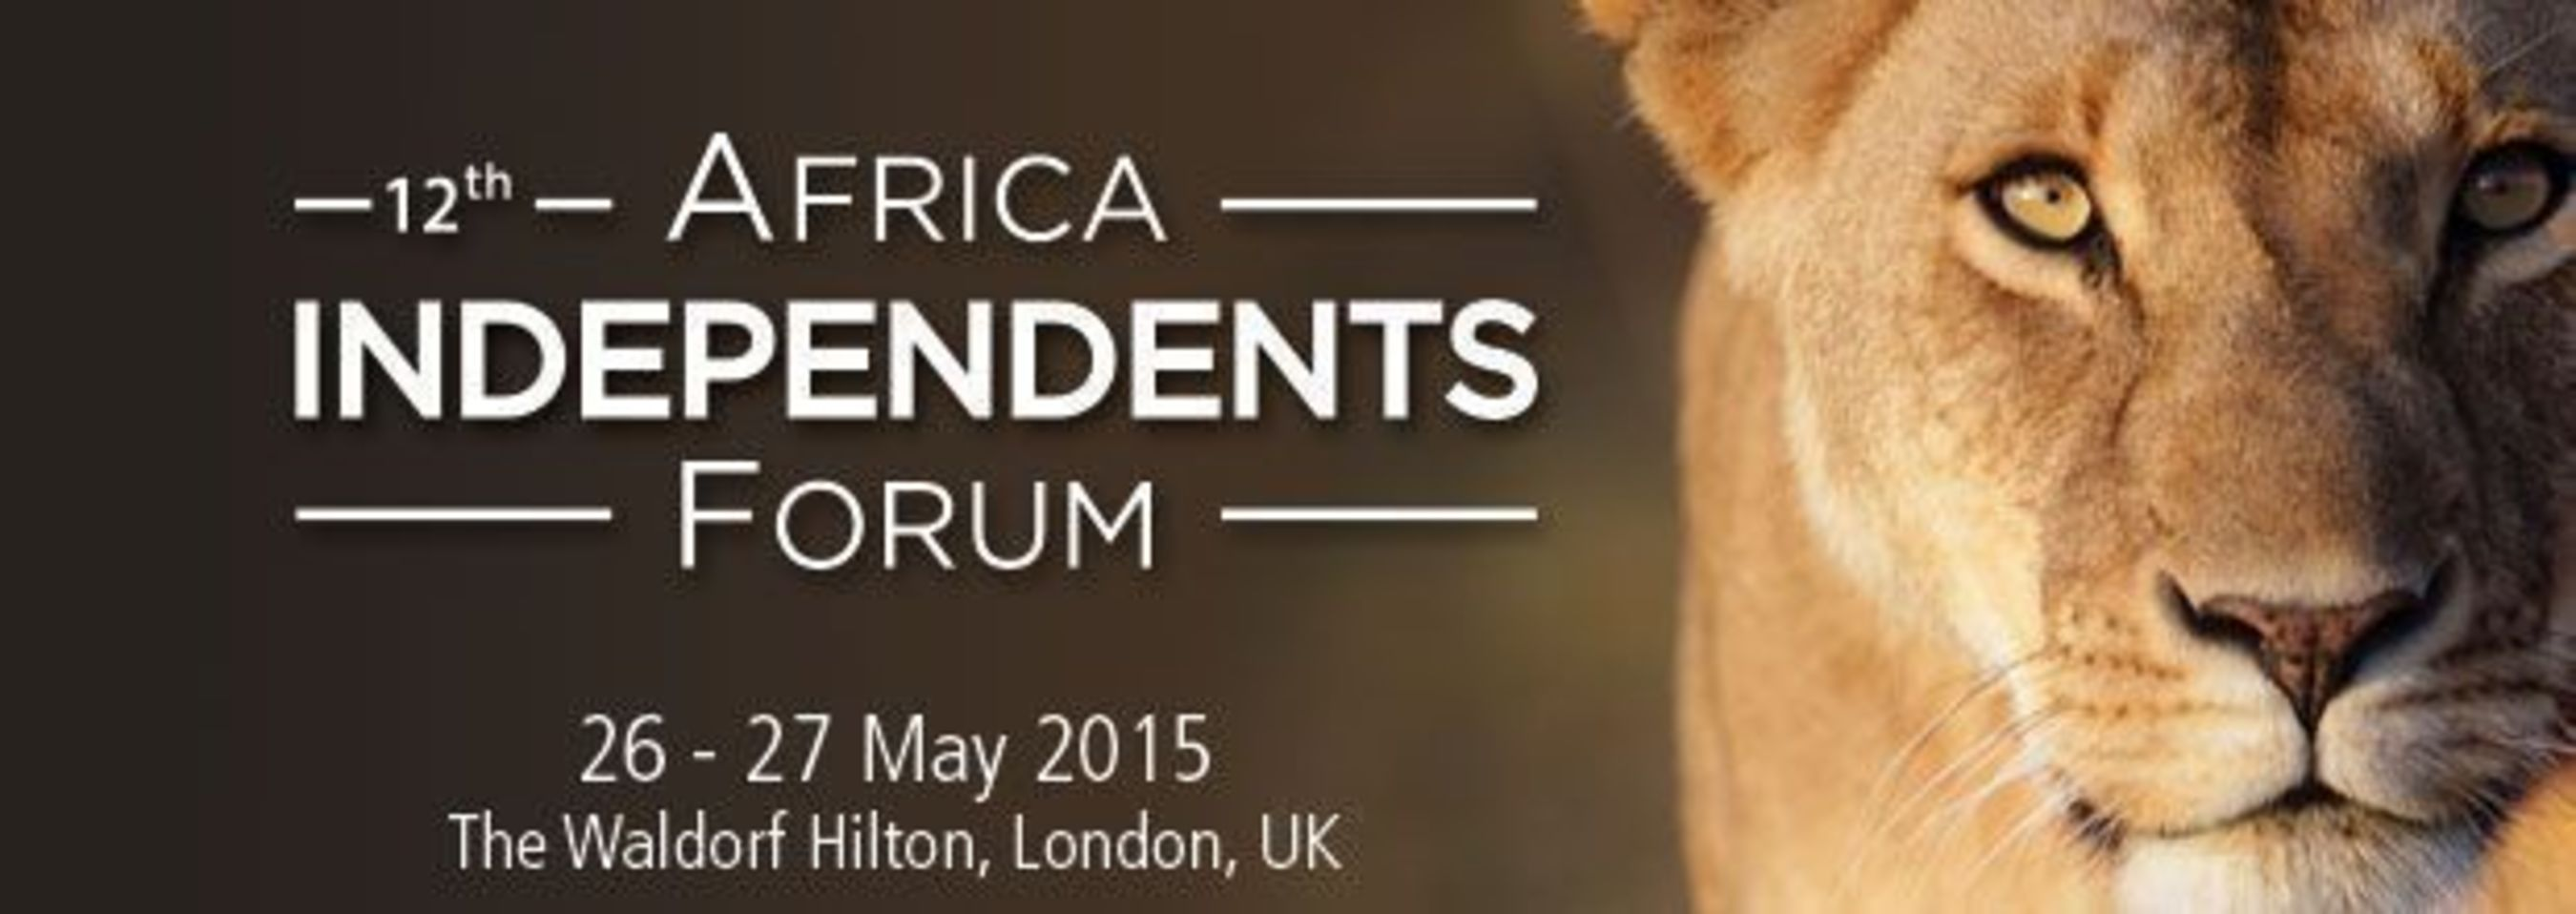 ITE Group Plc, Global Pacific & Partners host the 12th Africa Independents Forum 2015, London 26th-27th May (PRNewsFoto/Global Pacific & Partners)